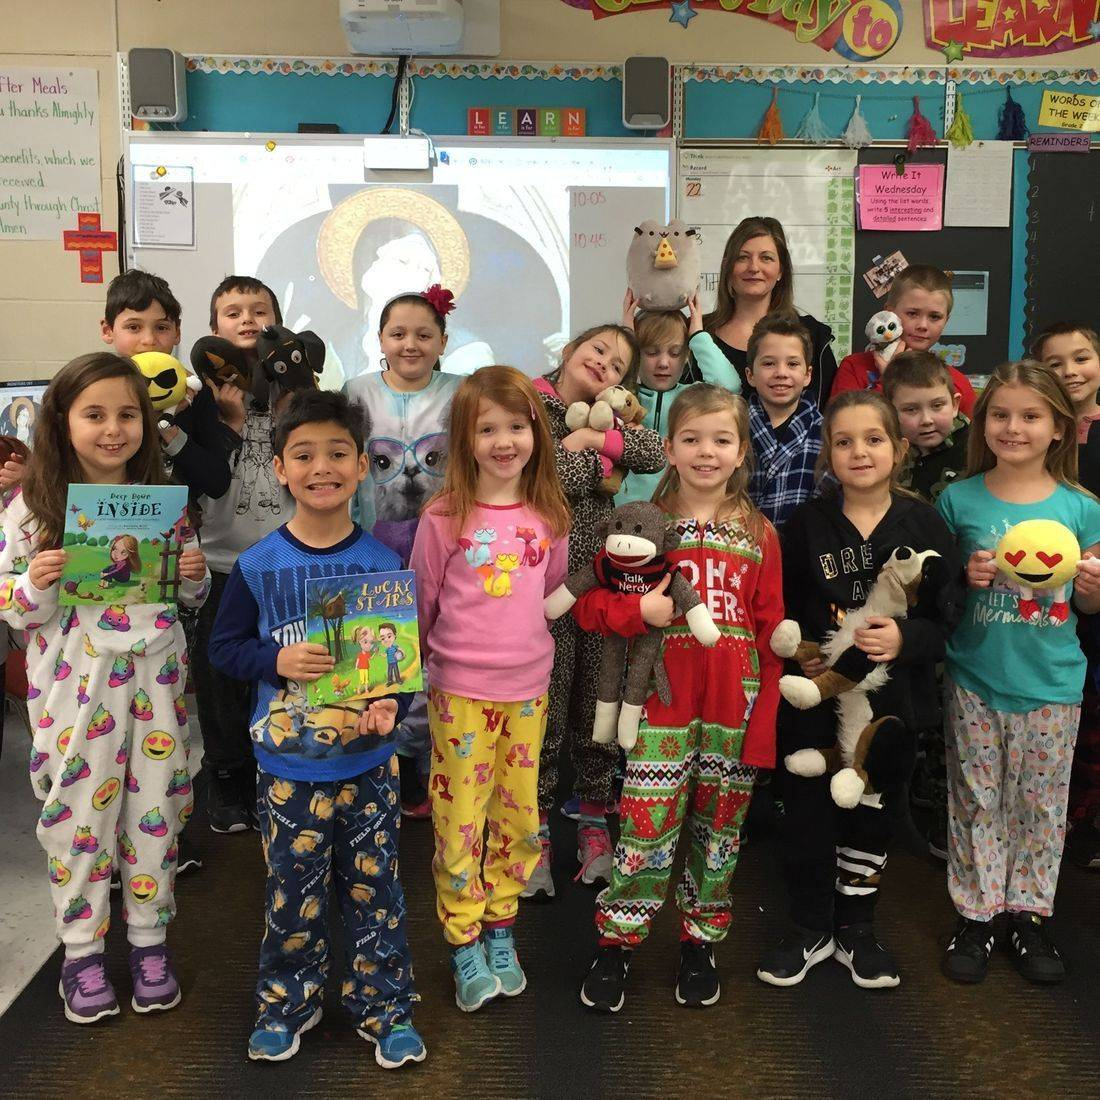 Snuggle Up and Read Day January 29, 2018 with grade 2 and 3 students with Author Daniella Grsic and her books Deep Down Inside and Lucky Stars